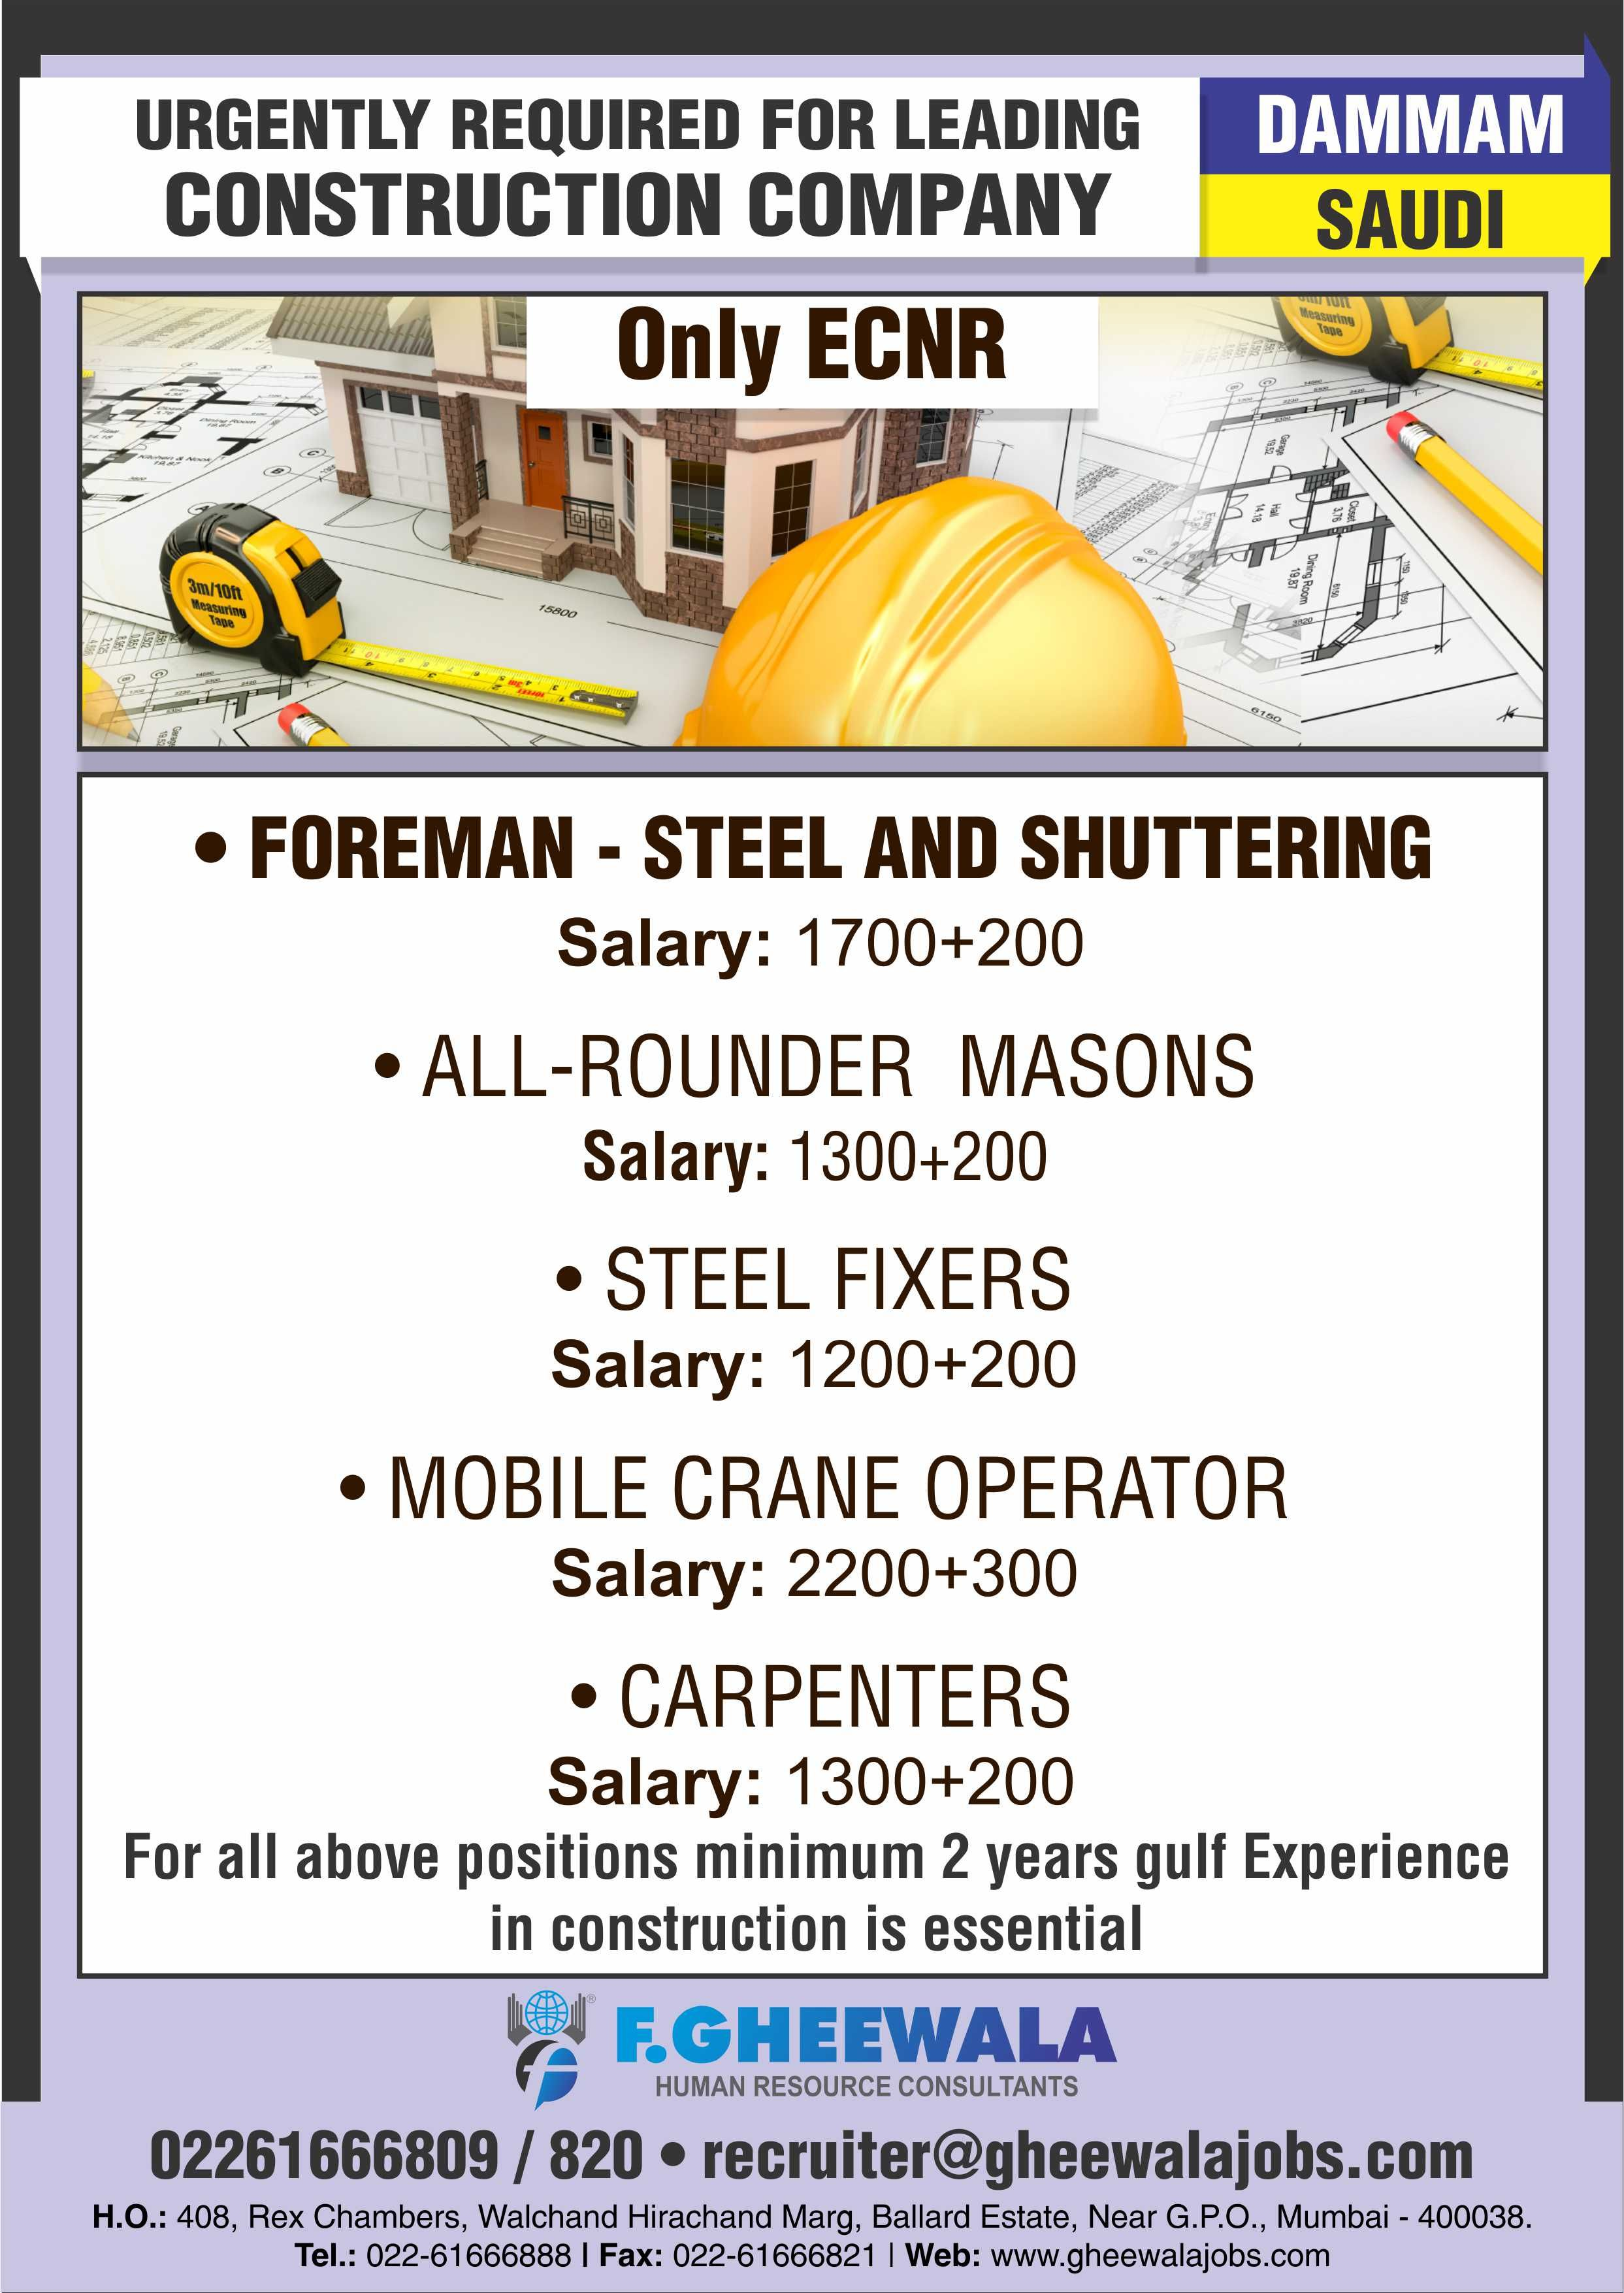 Urgent Job Requirement for the Leading CONSTRUCTION COMPANY